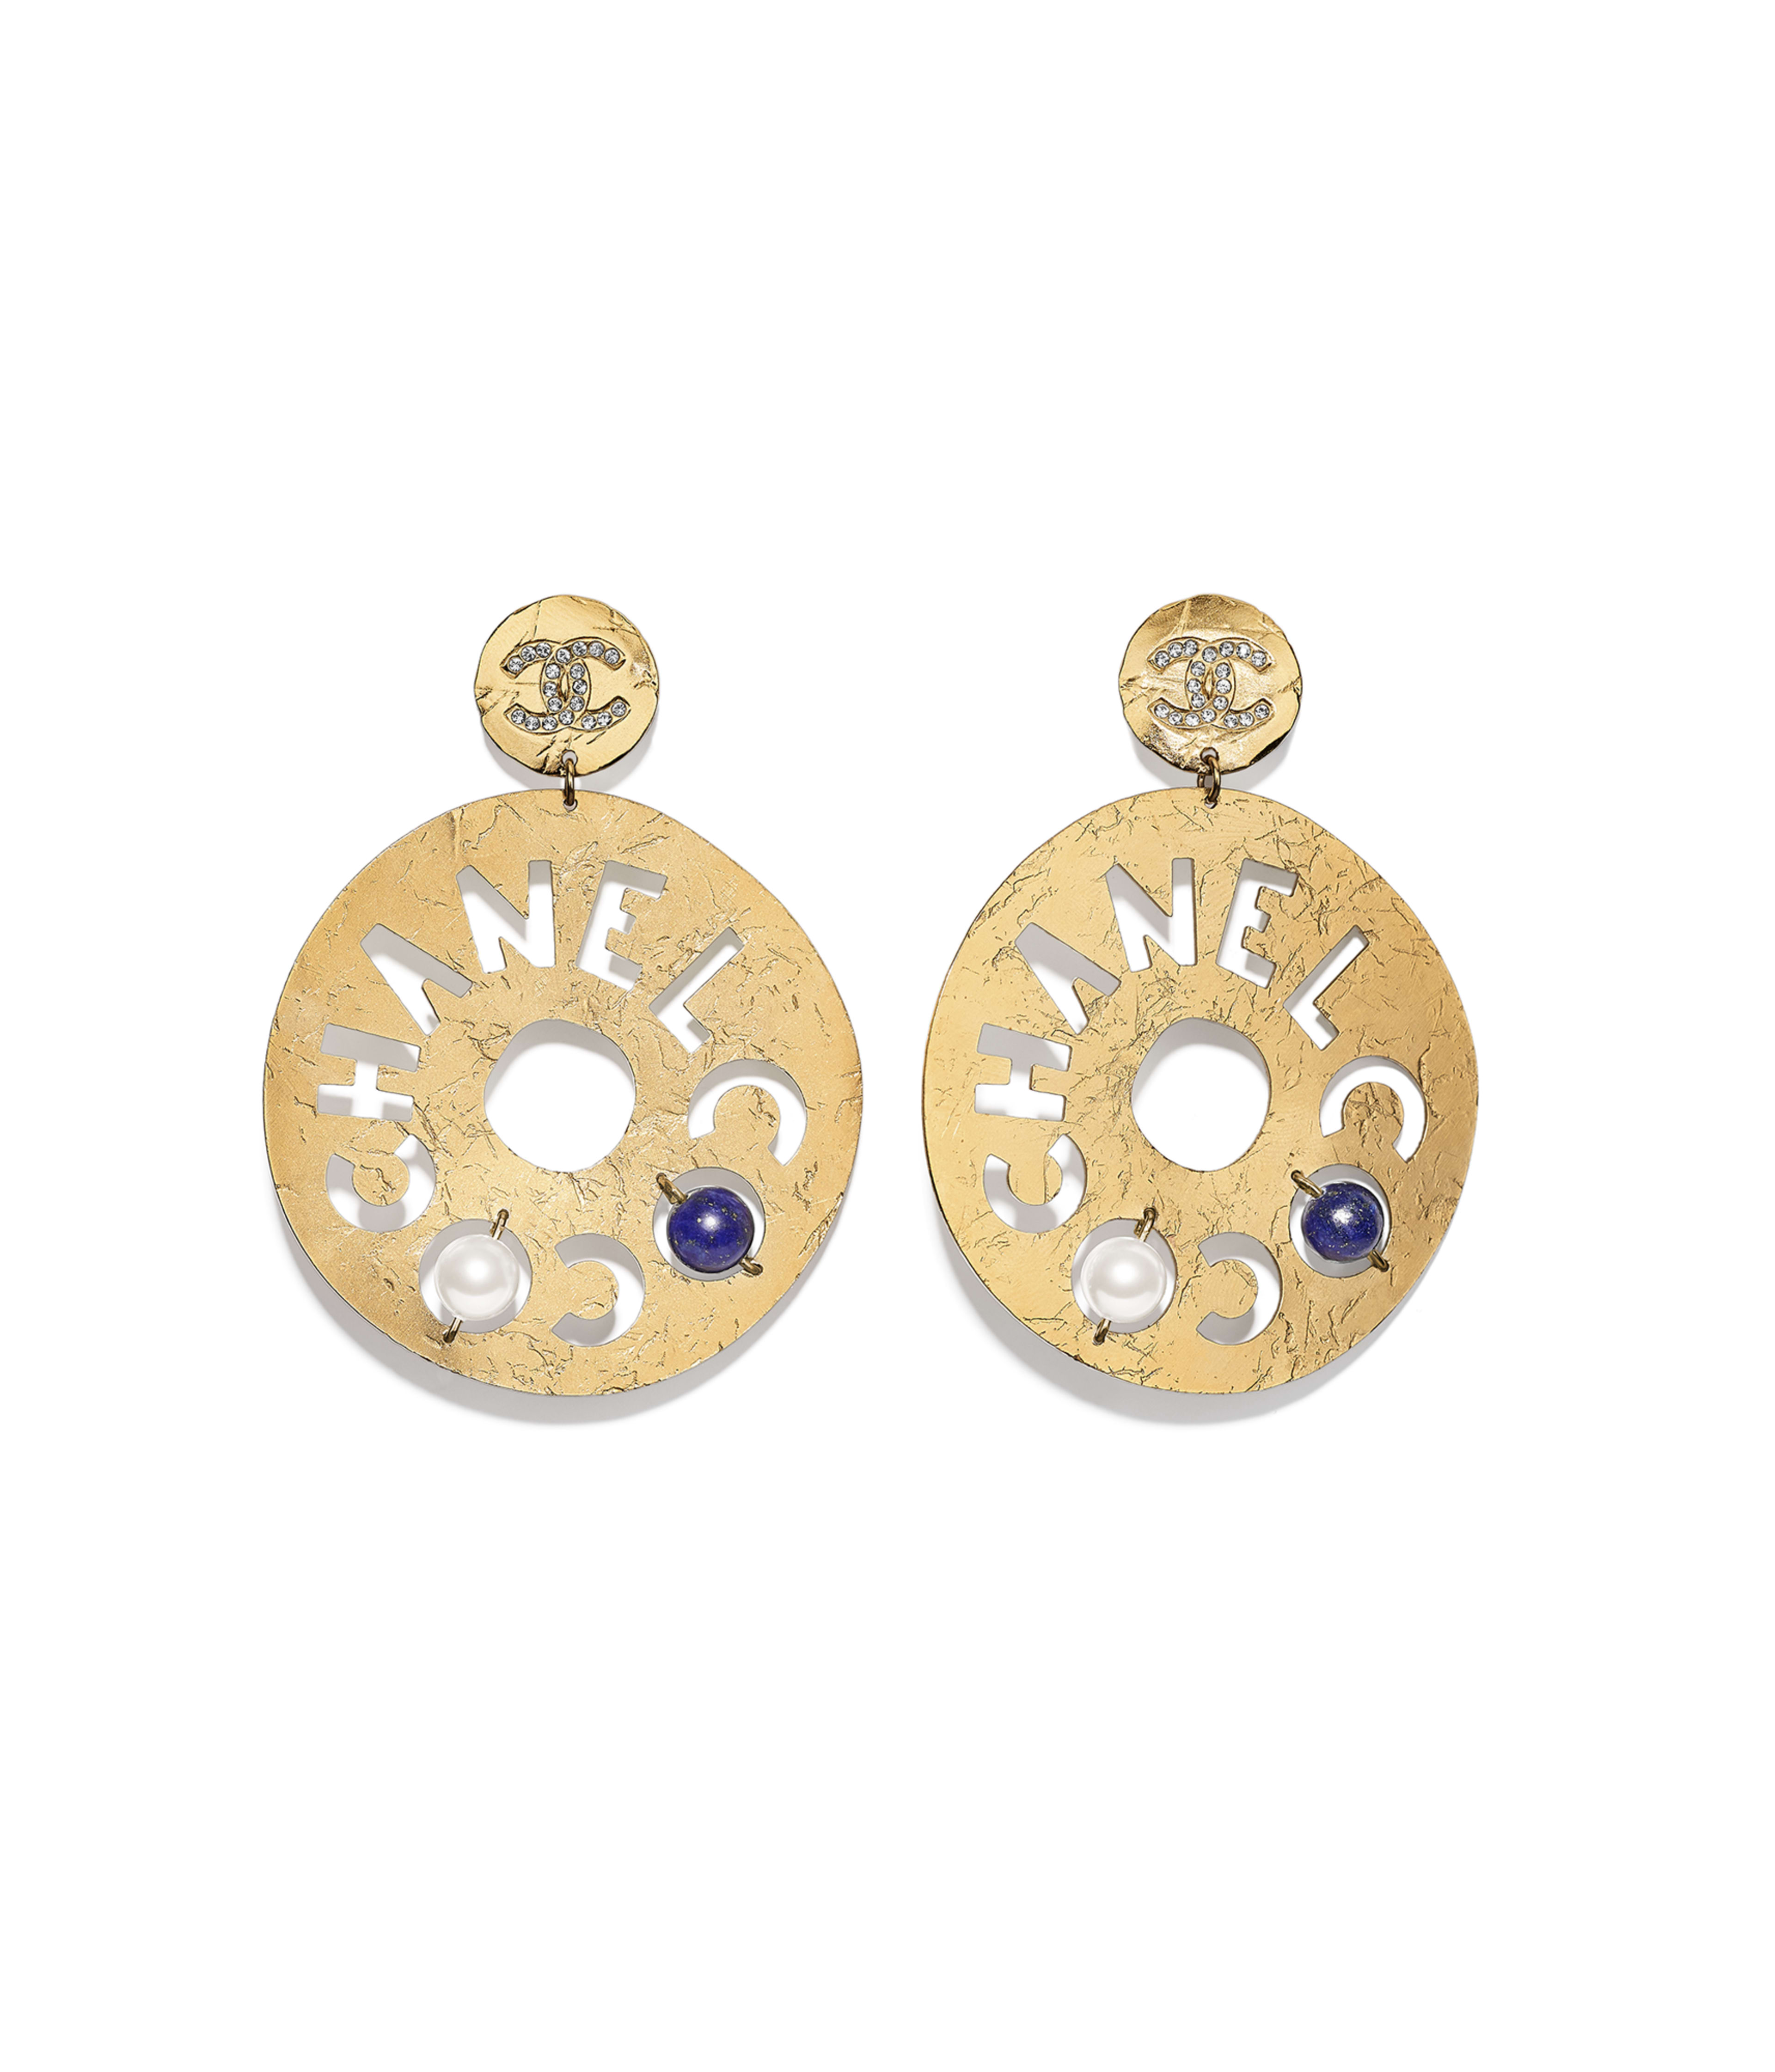 2bbab0f0c Clip-on Earrings Metal, Natural Stones, Glass Pearls & Strass, Gold, Pearly  White, Blue & Crystal Ref. AB1602Y47711Z9127